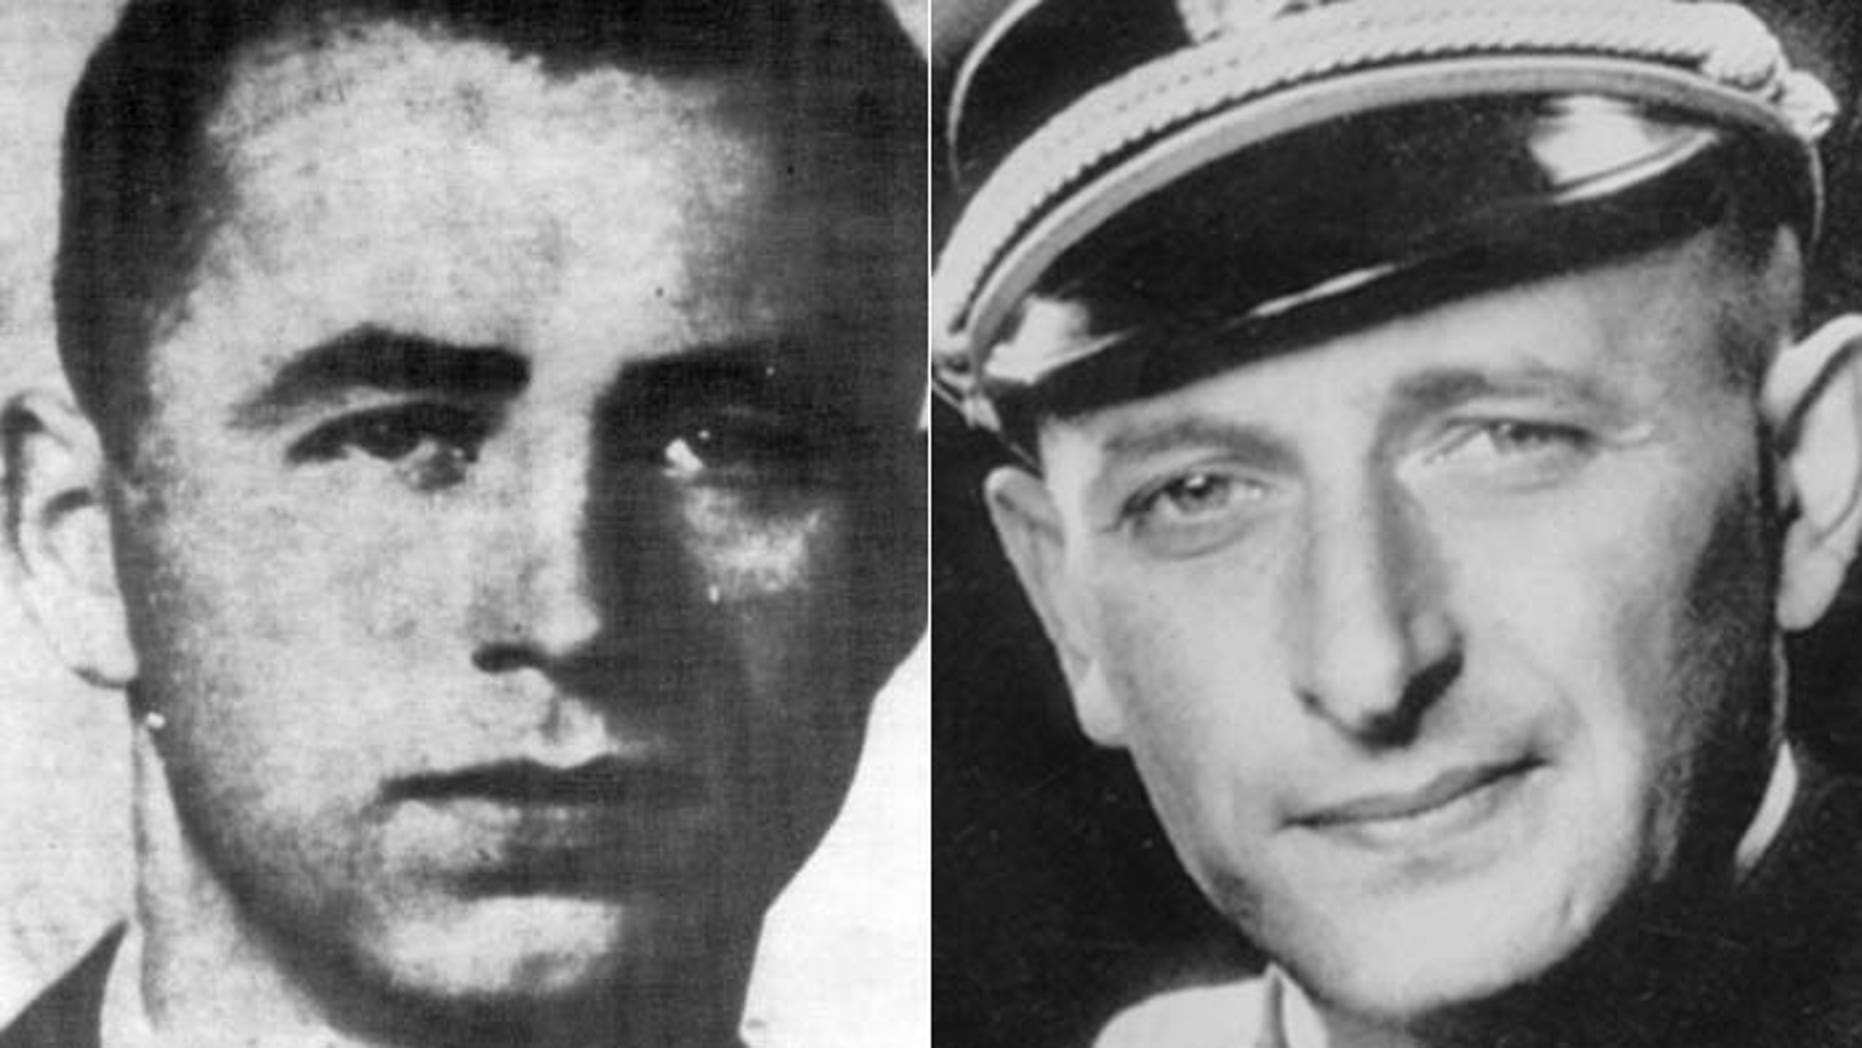 """Long-wanted Nazi war criminal Alois Brunner, (l.), who Adolf Eichman, (r.), called """"one of my best men,"""" likely died four years ago in Syria, according to the man who tracked him for decades."""